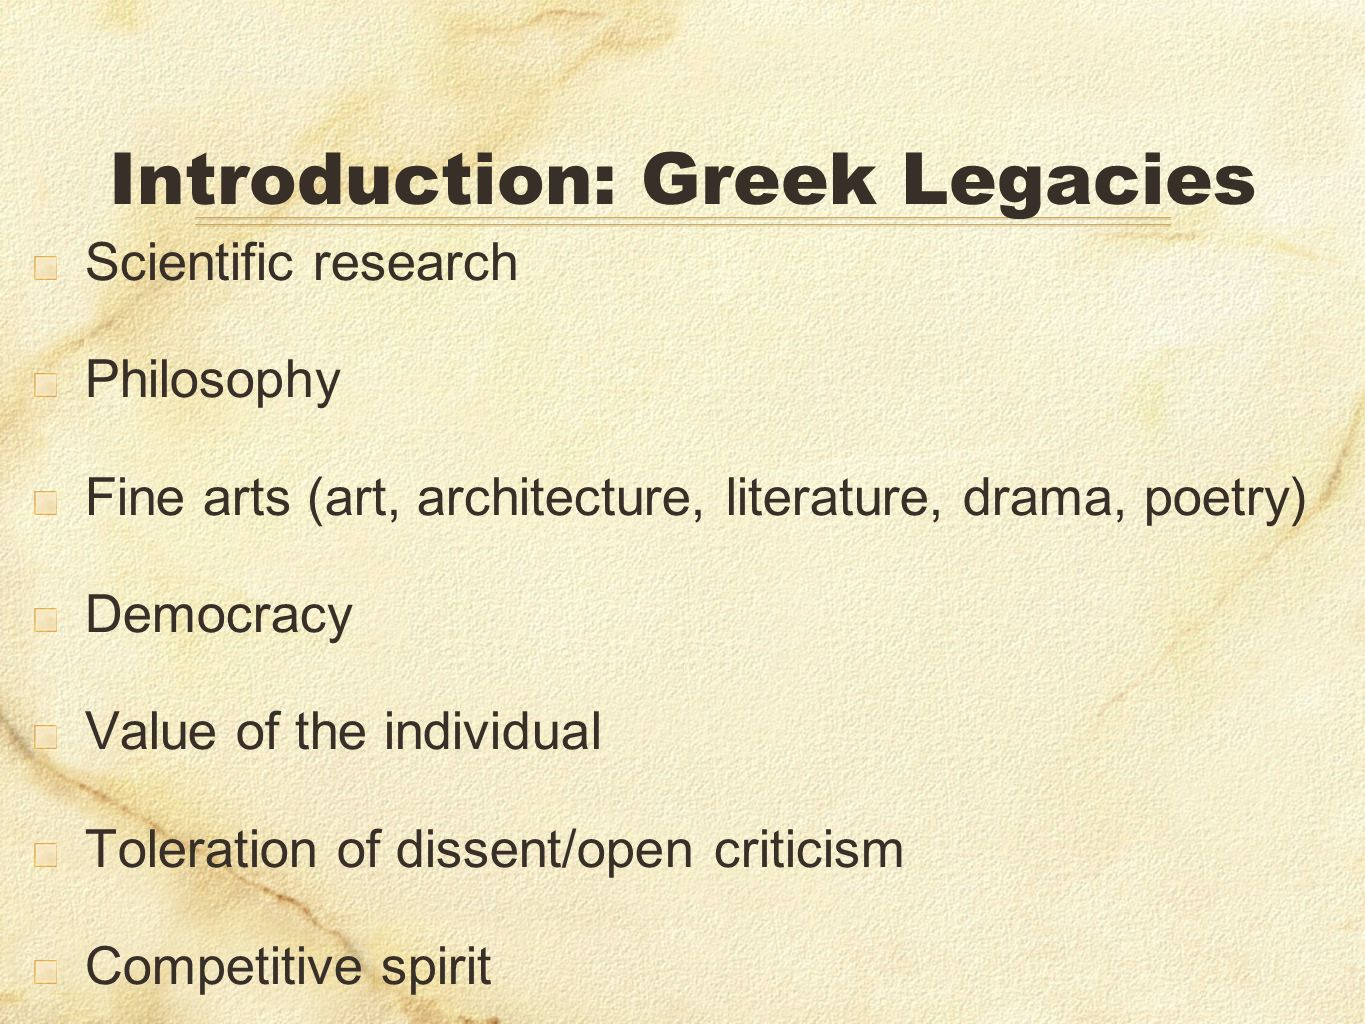 Introduction: Greek Legacies